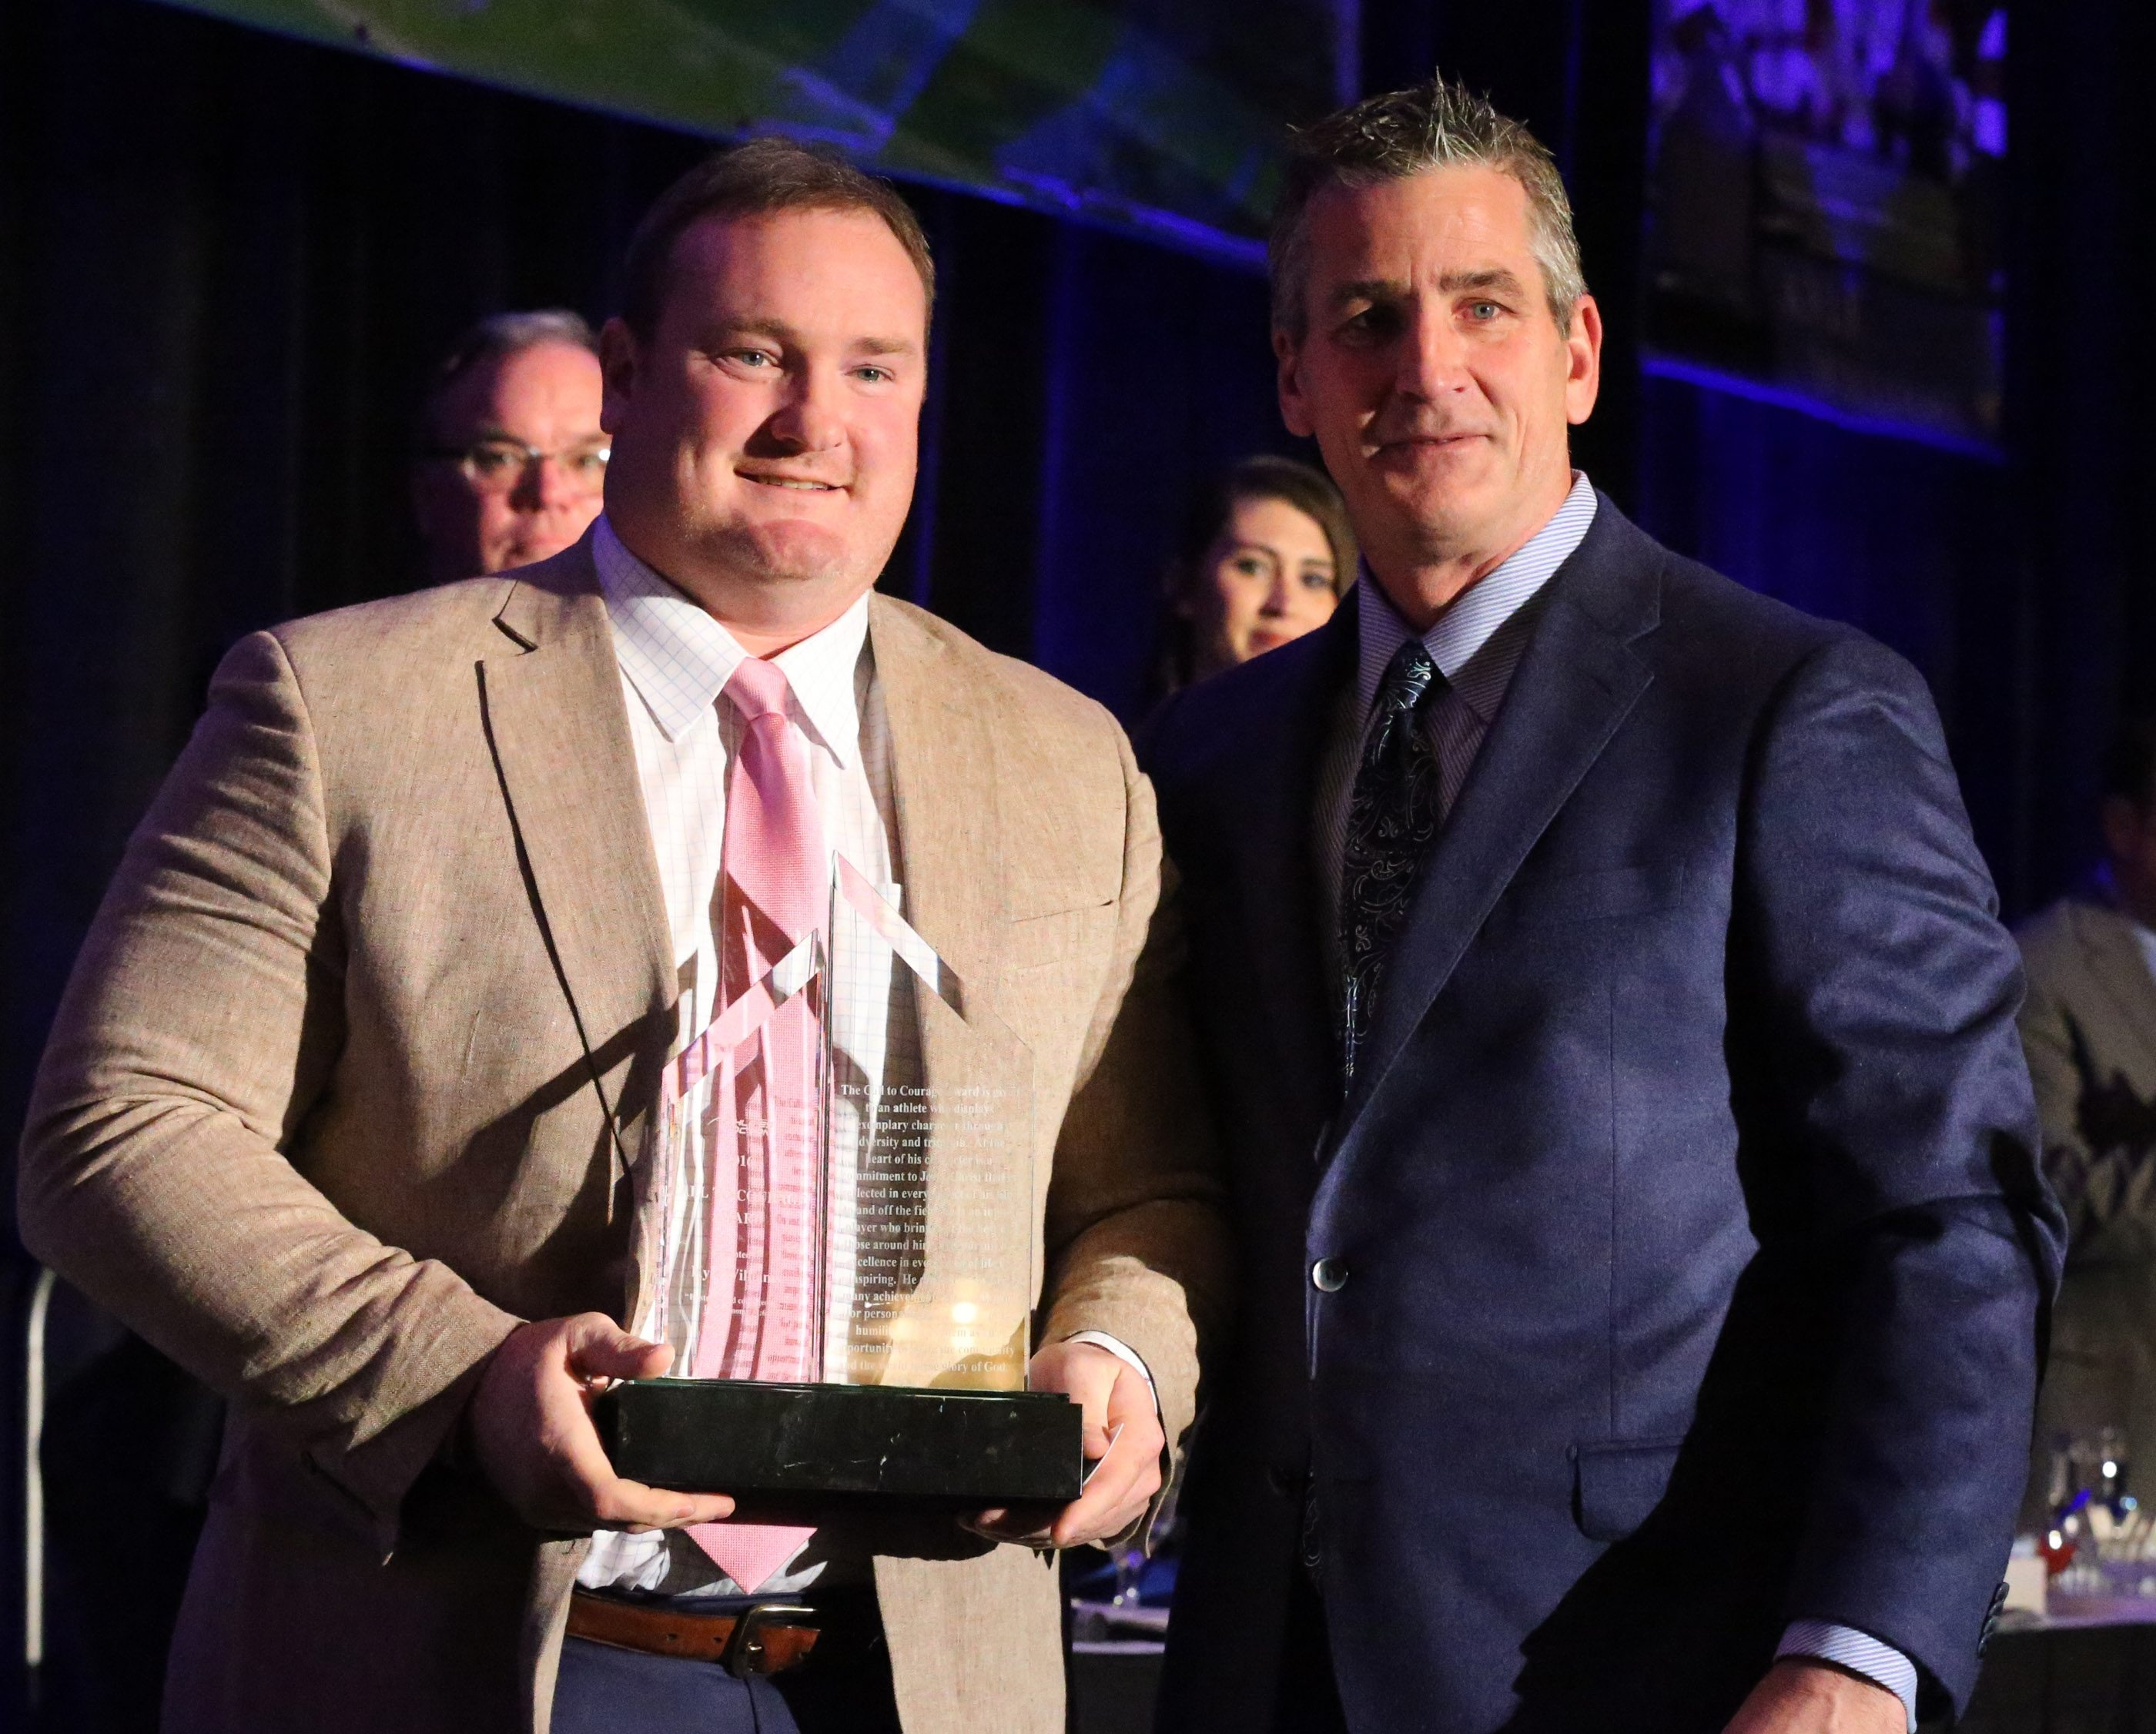 Frank Reich, right, presents the Call to Courage award to the Bills' Kyle Williams. The award honors a current NFL player who shows exemplary character, a commitment to Jesus Christ and community service.